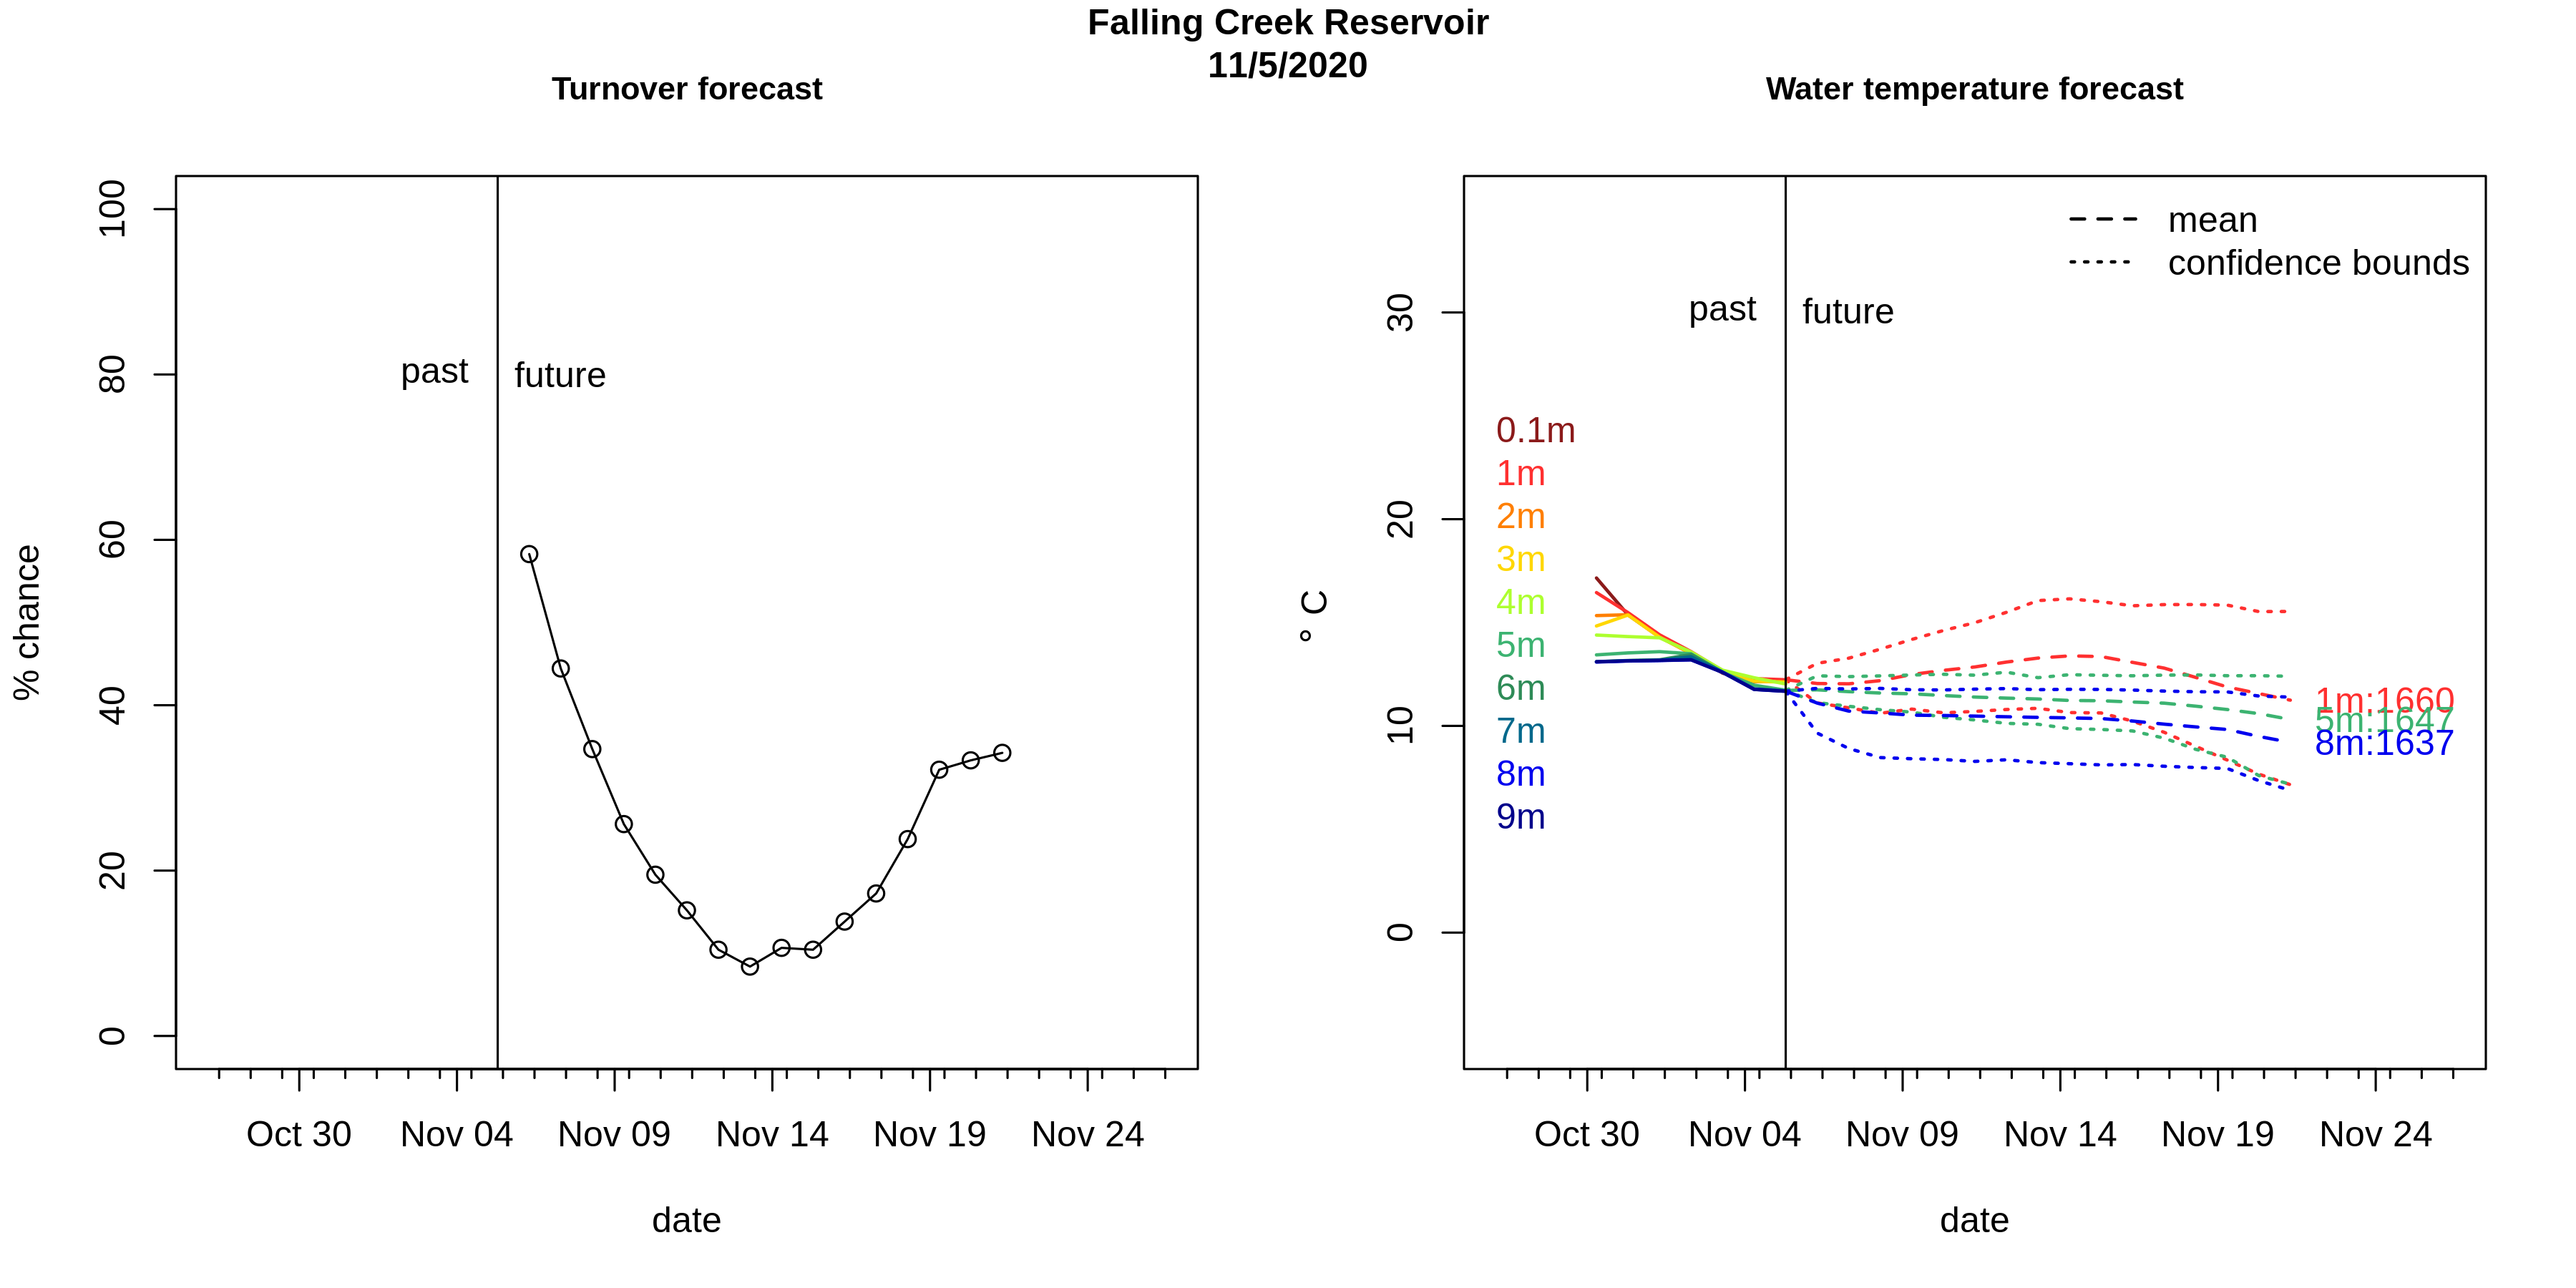 Current Forecast for Falling Creek Reservoir